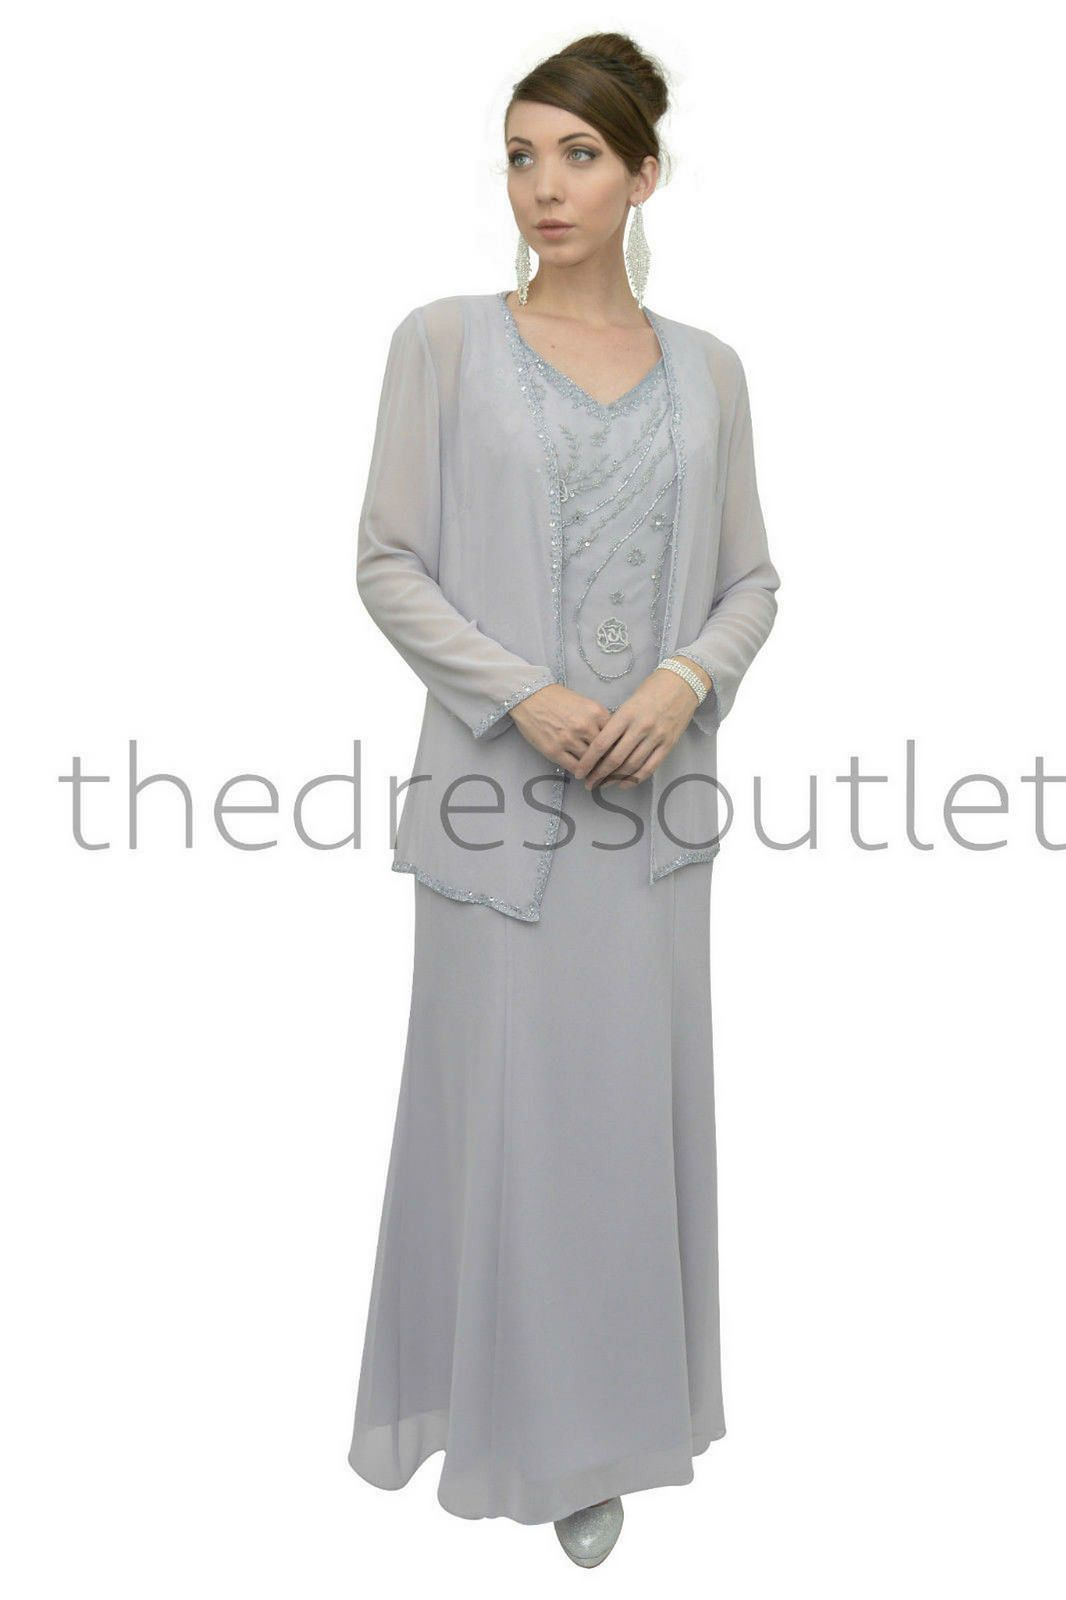 This Beautiful Full Length Gown Comes With An Embroidered Beaded Top